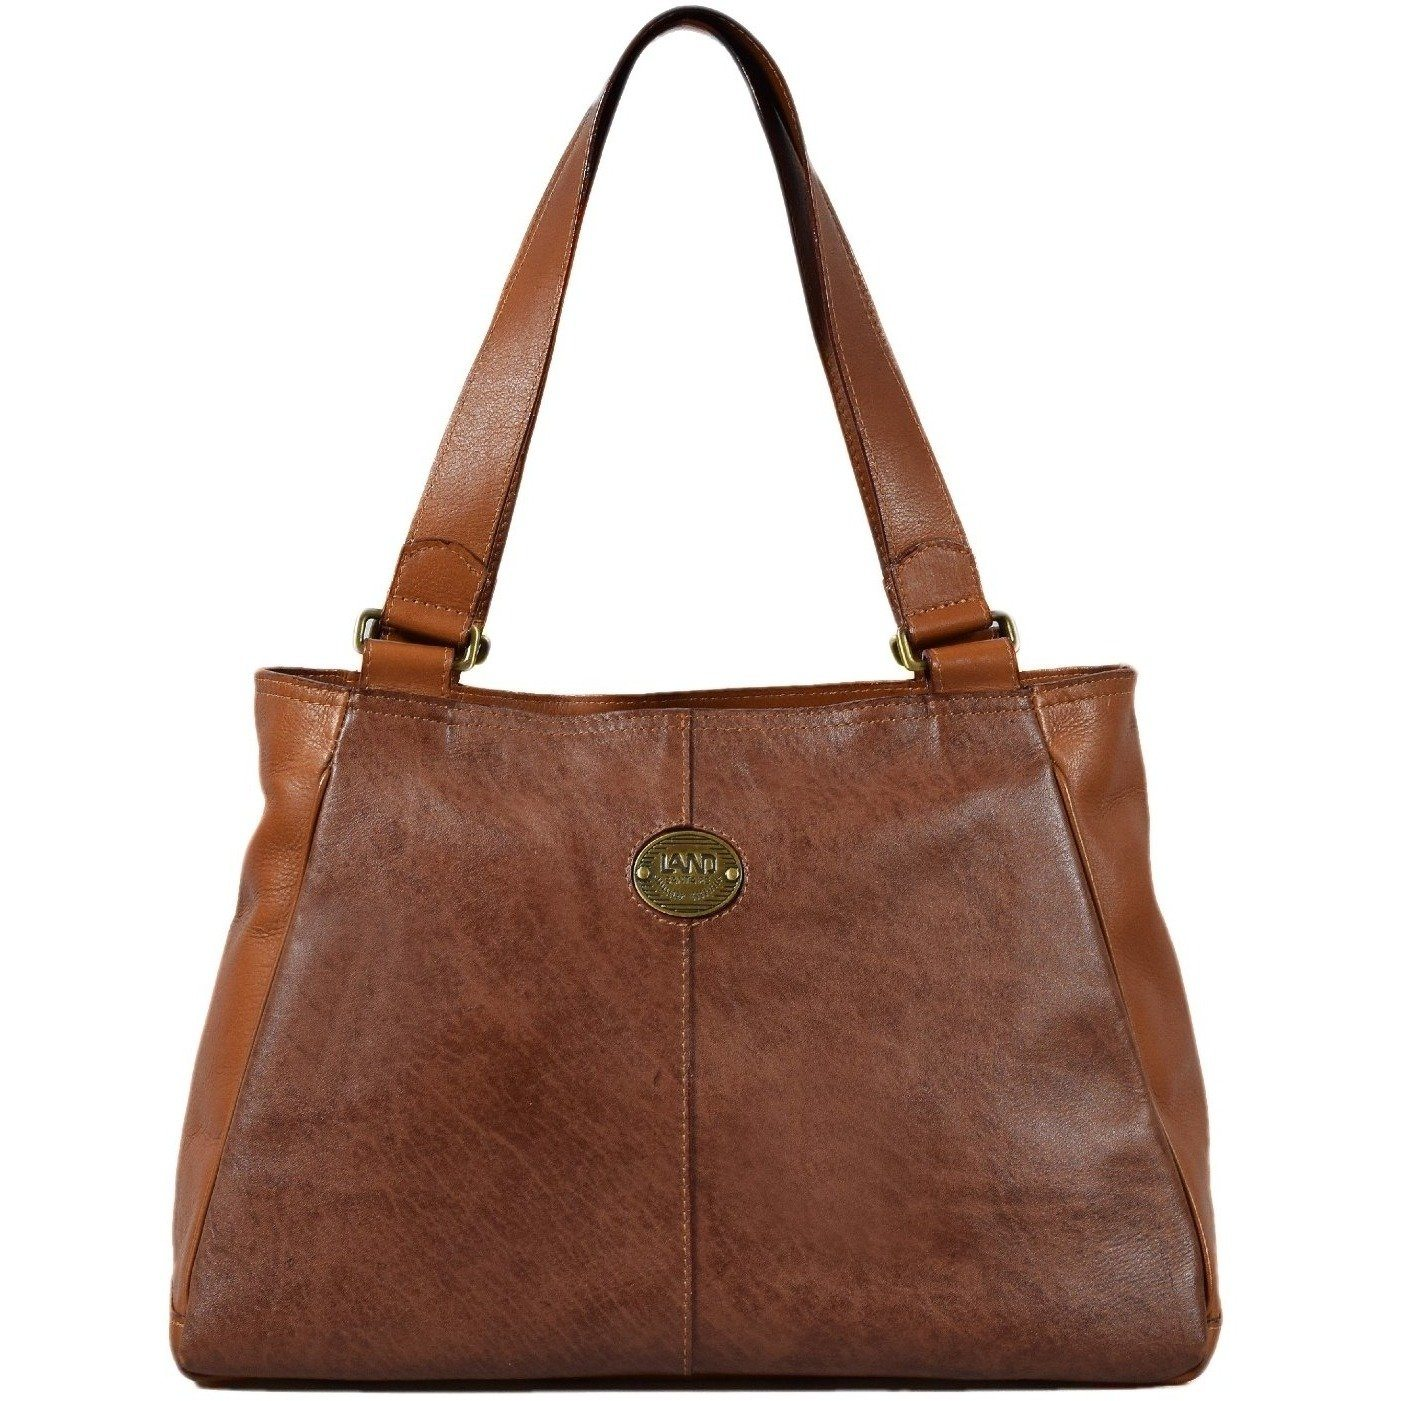 Santa Fe Tania Tote, Handbag | LAND Leather